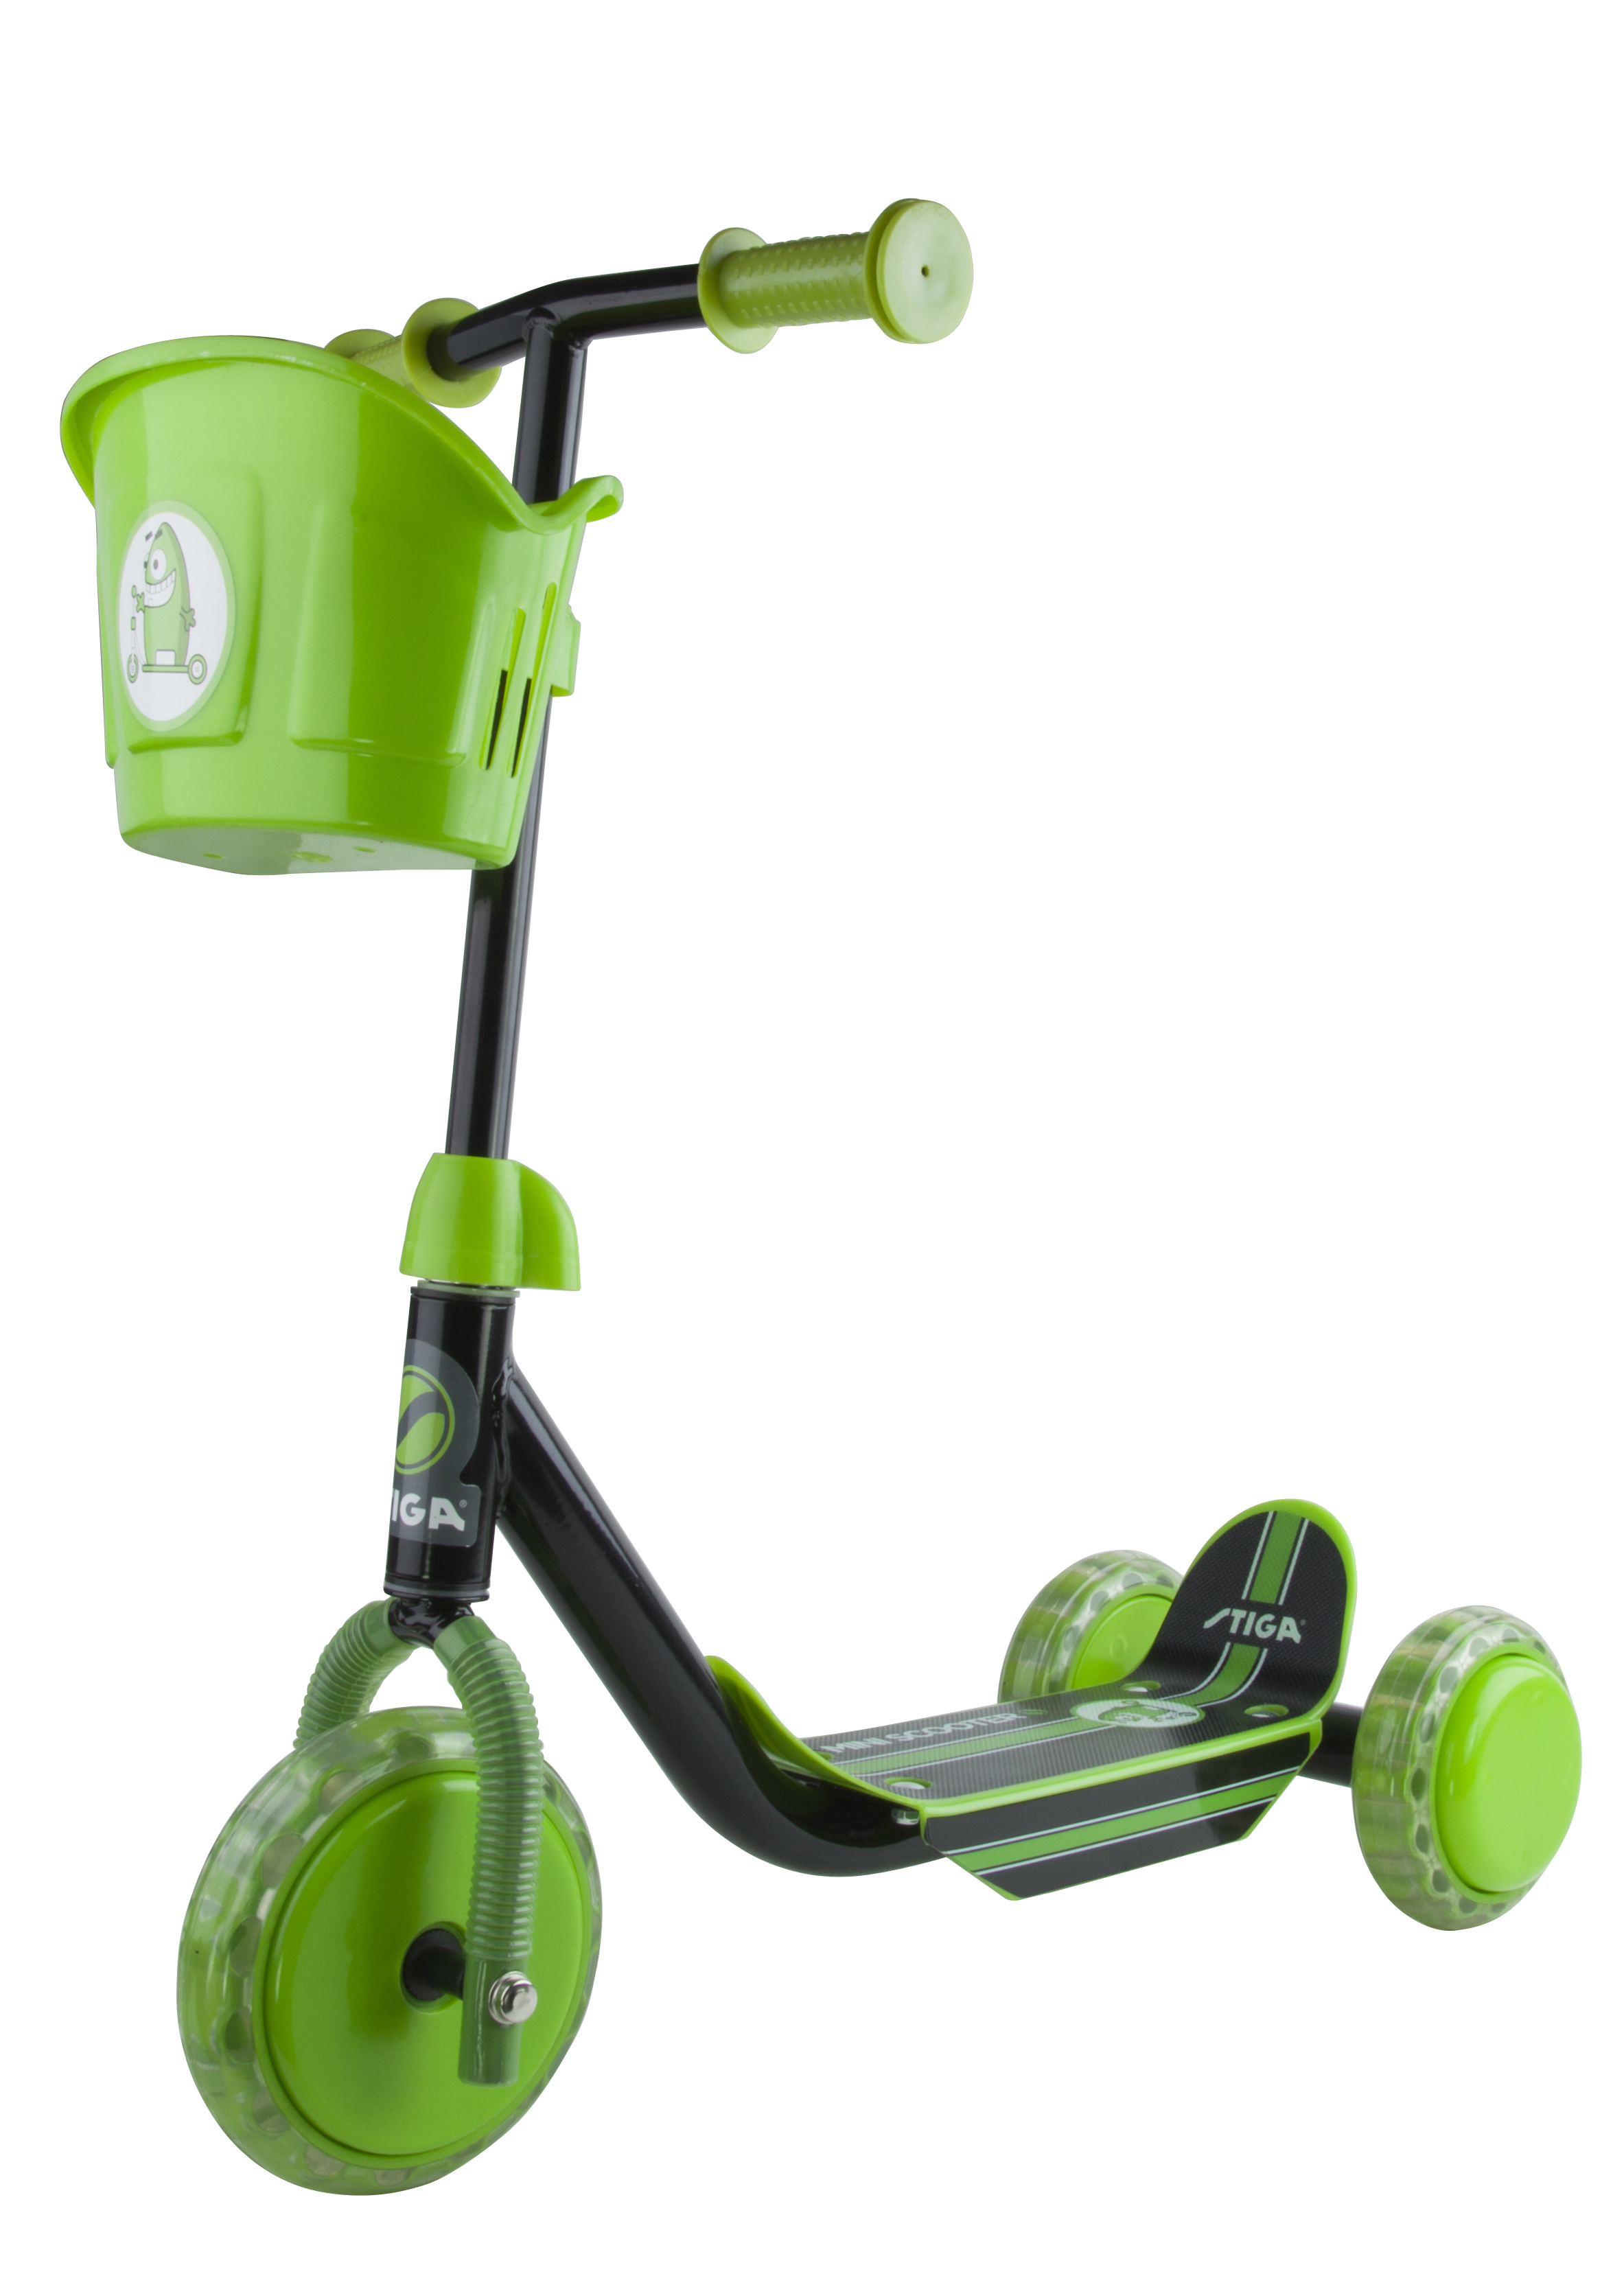 Stiga - Kid 3W Scooter - Black/Green (80-7401-19)